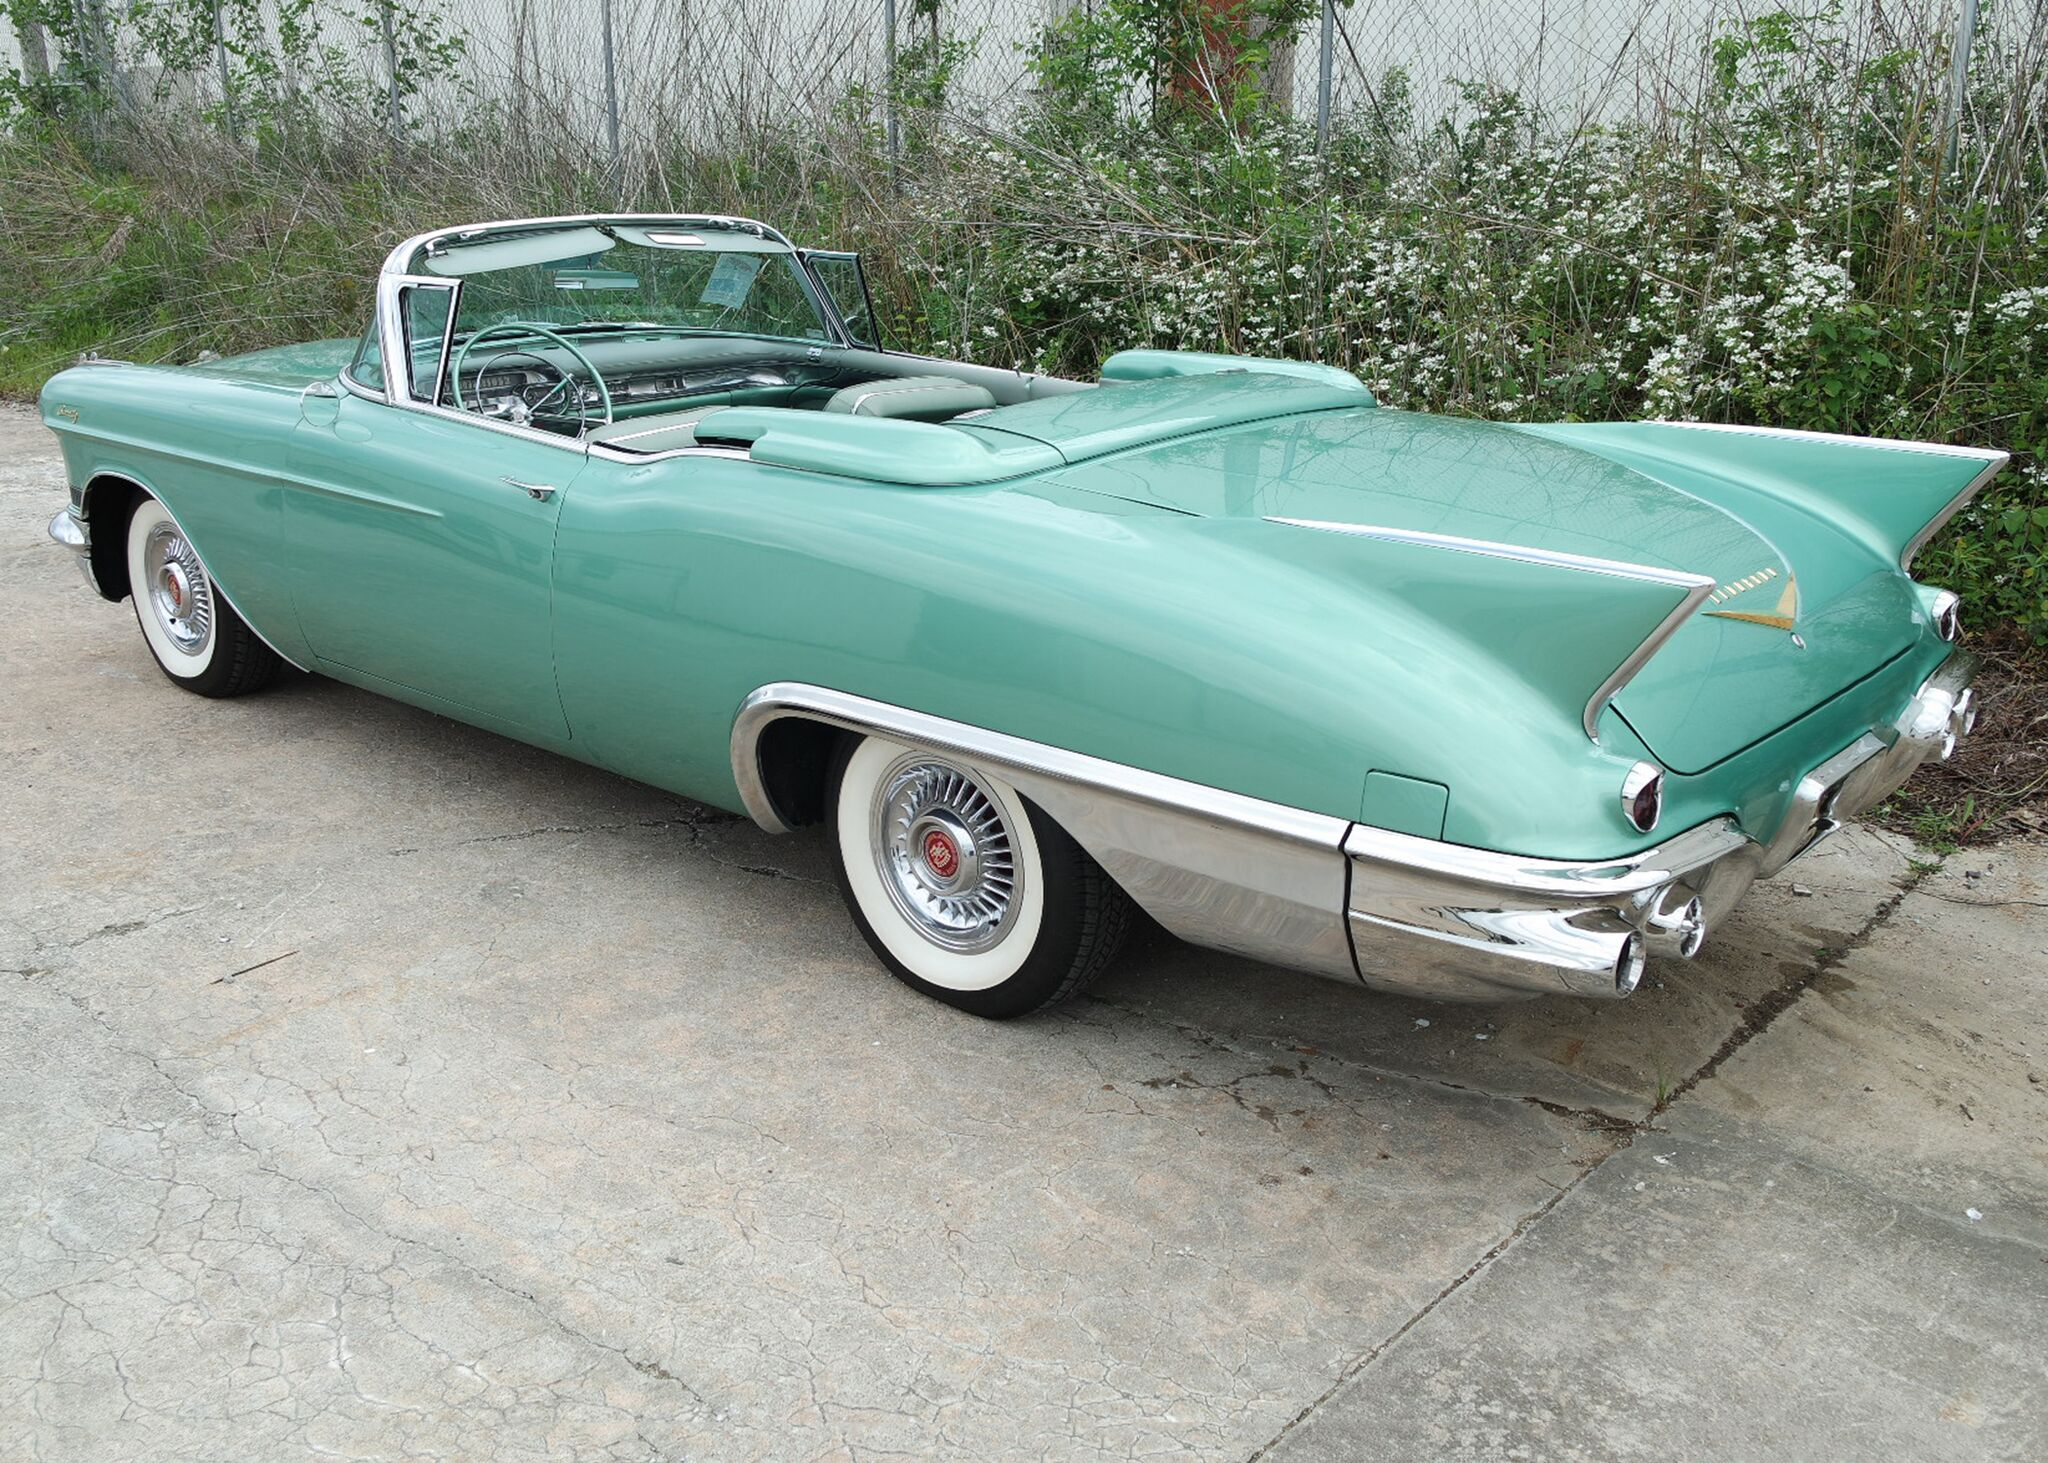 1957 Cadillac Eldorado Biarritz just misses six-figure sale | Leake Auction photos